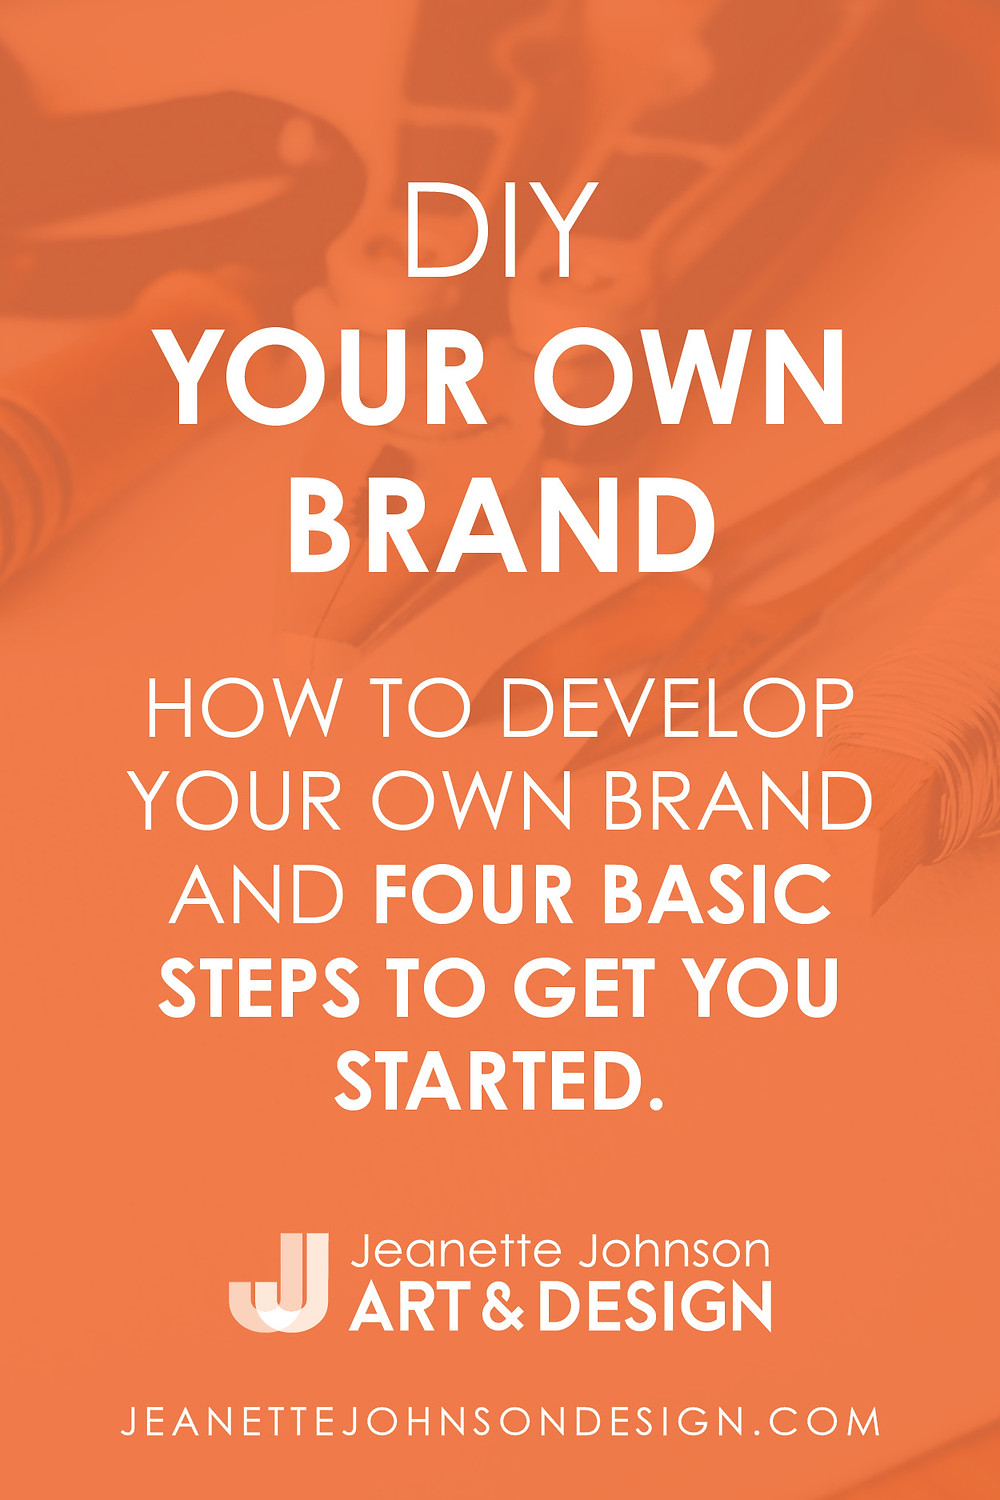 Pin Image for how to DIY your own brand article.